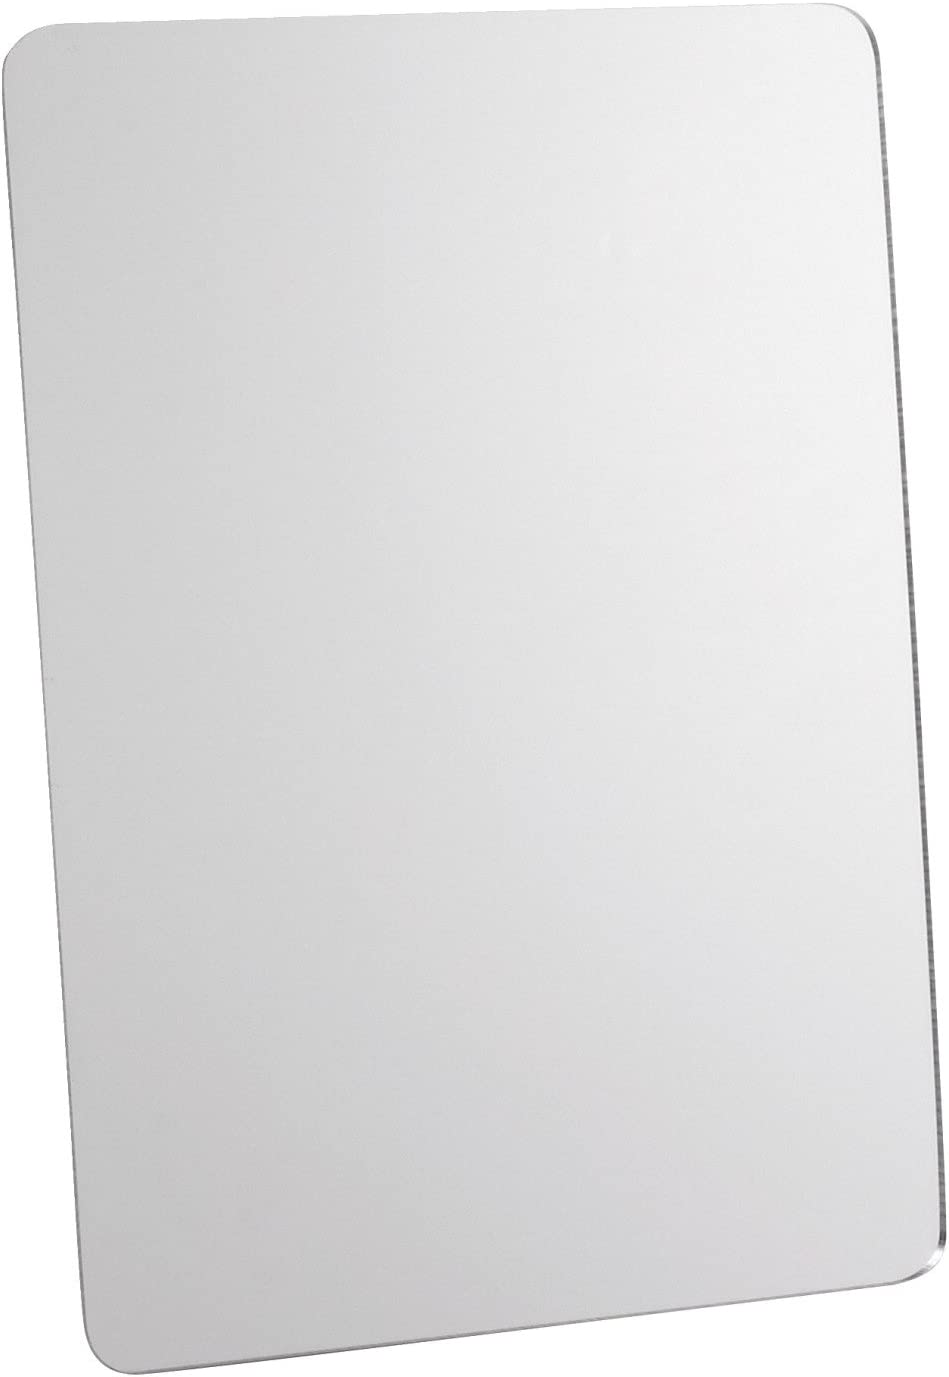 School Smart Rounded Corner Personal Acrylic Mirror with Magnetic Back, 5 L x 7 W in, Assorted Transparent Color - 247465